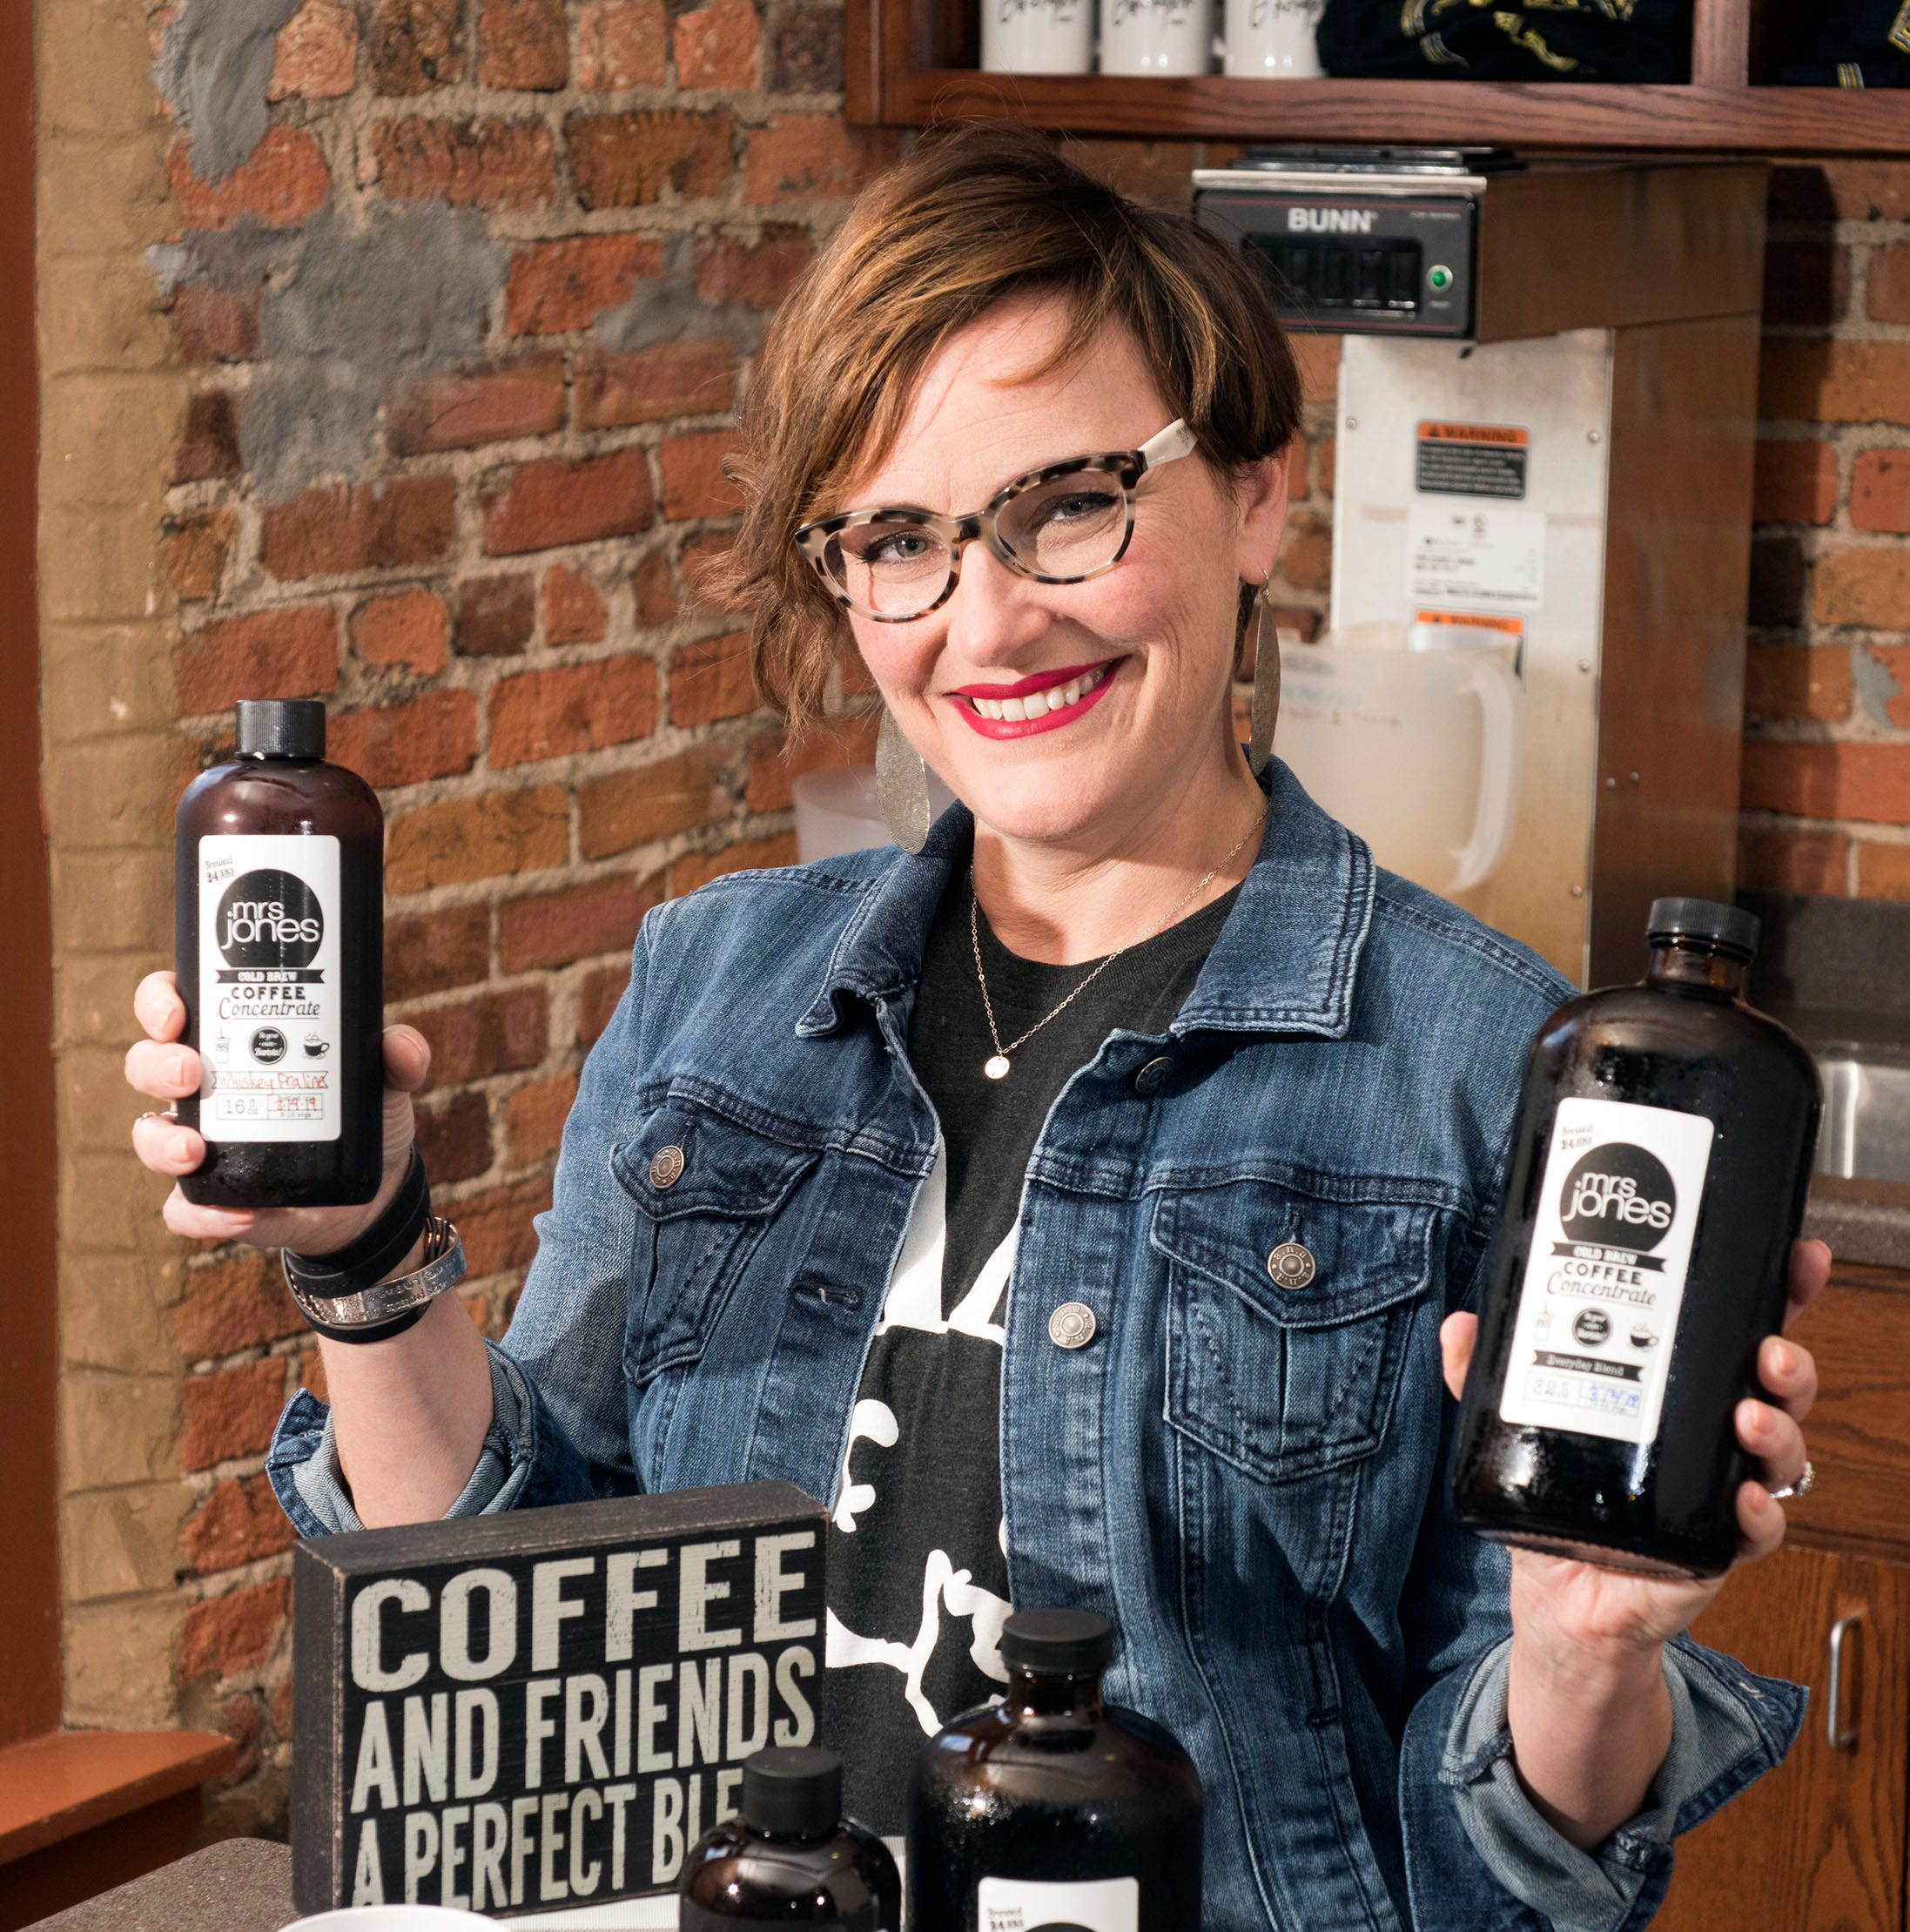 Pensacola resident Stephanie Jones shows off her cold brew coffees on Friday, March 15, 2019. Jones has found a market for her cold brew concentrates at a variety of local businesses and the Palafox Market on Saturday's in downtown Pensacola.